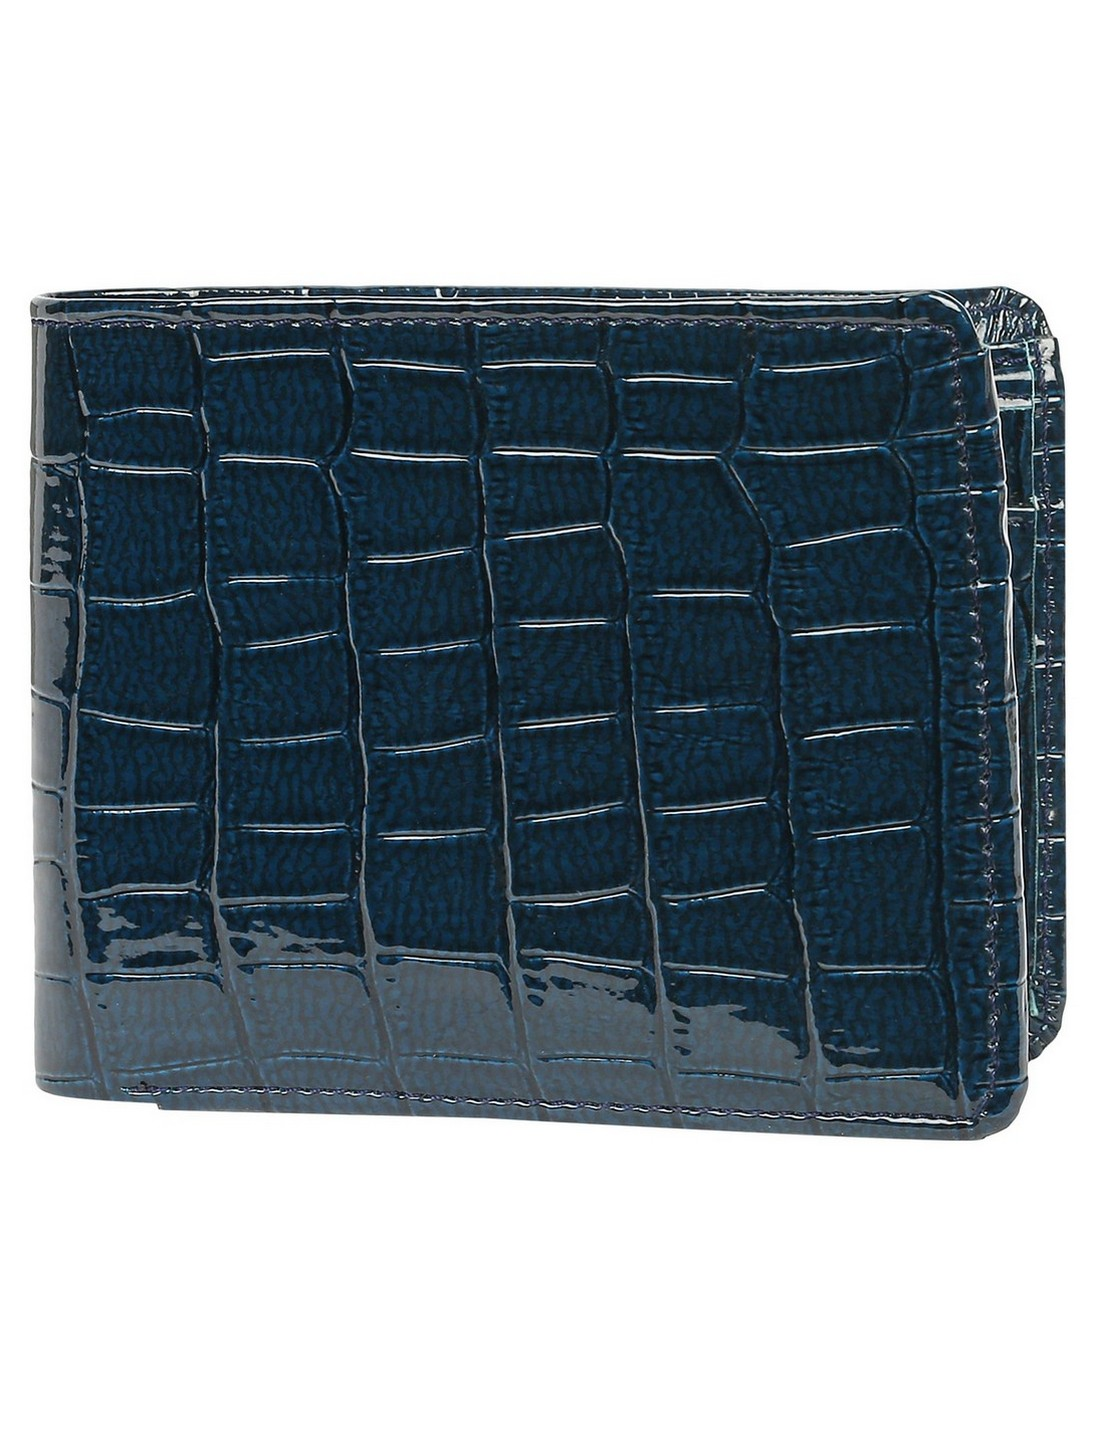 CREATURE | CREATURE Bi-Fold PU-Leather Wallet for Men with Multiple Card Slots